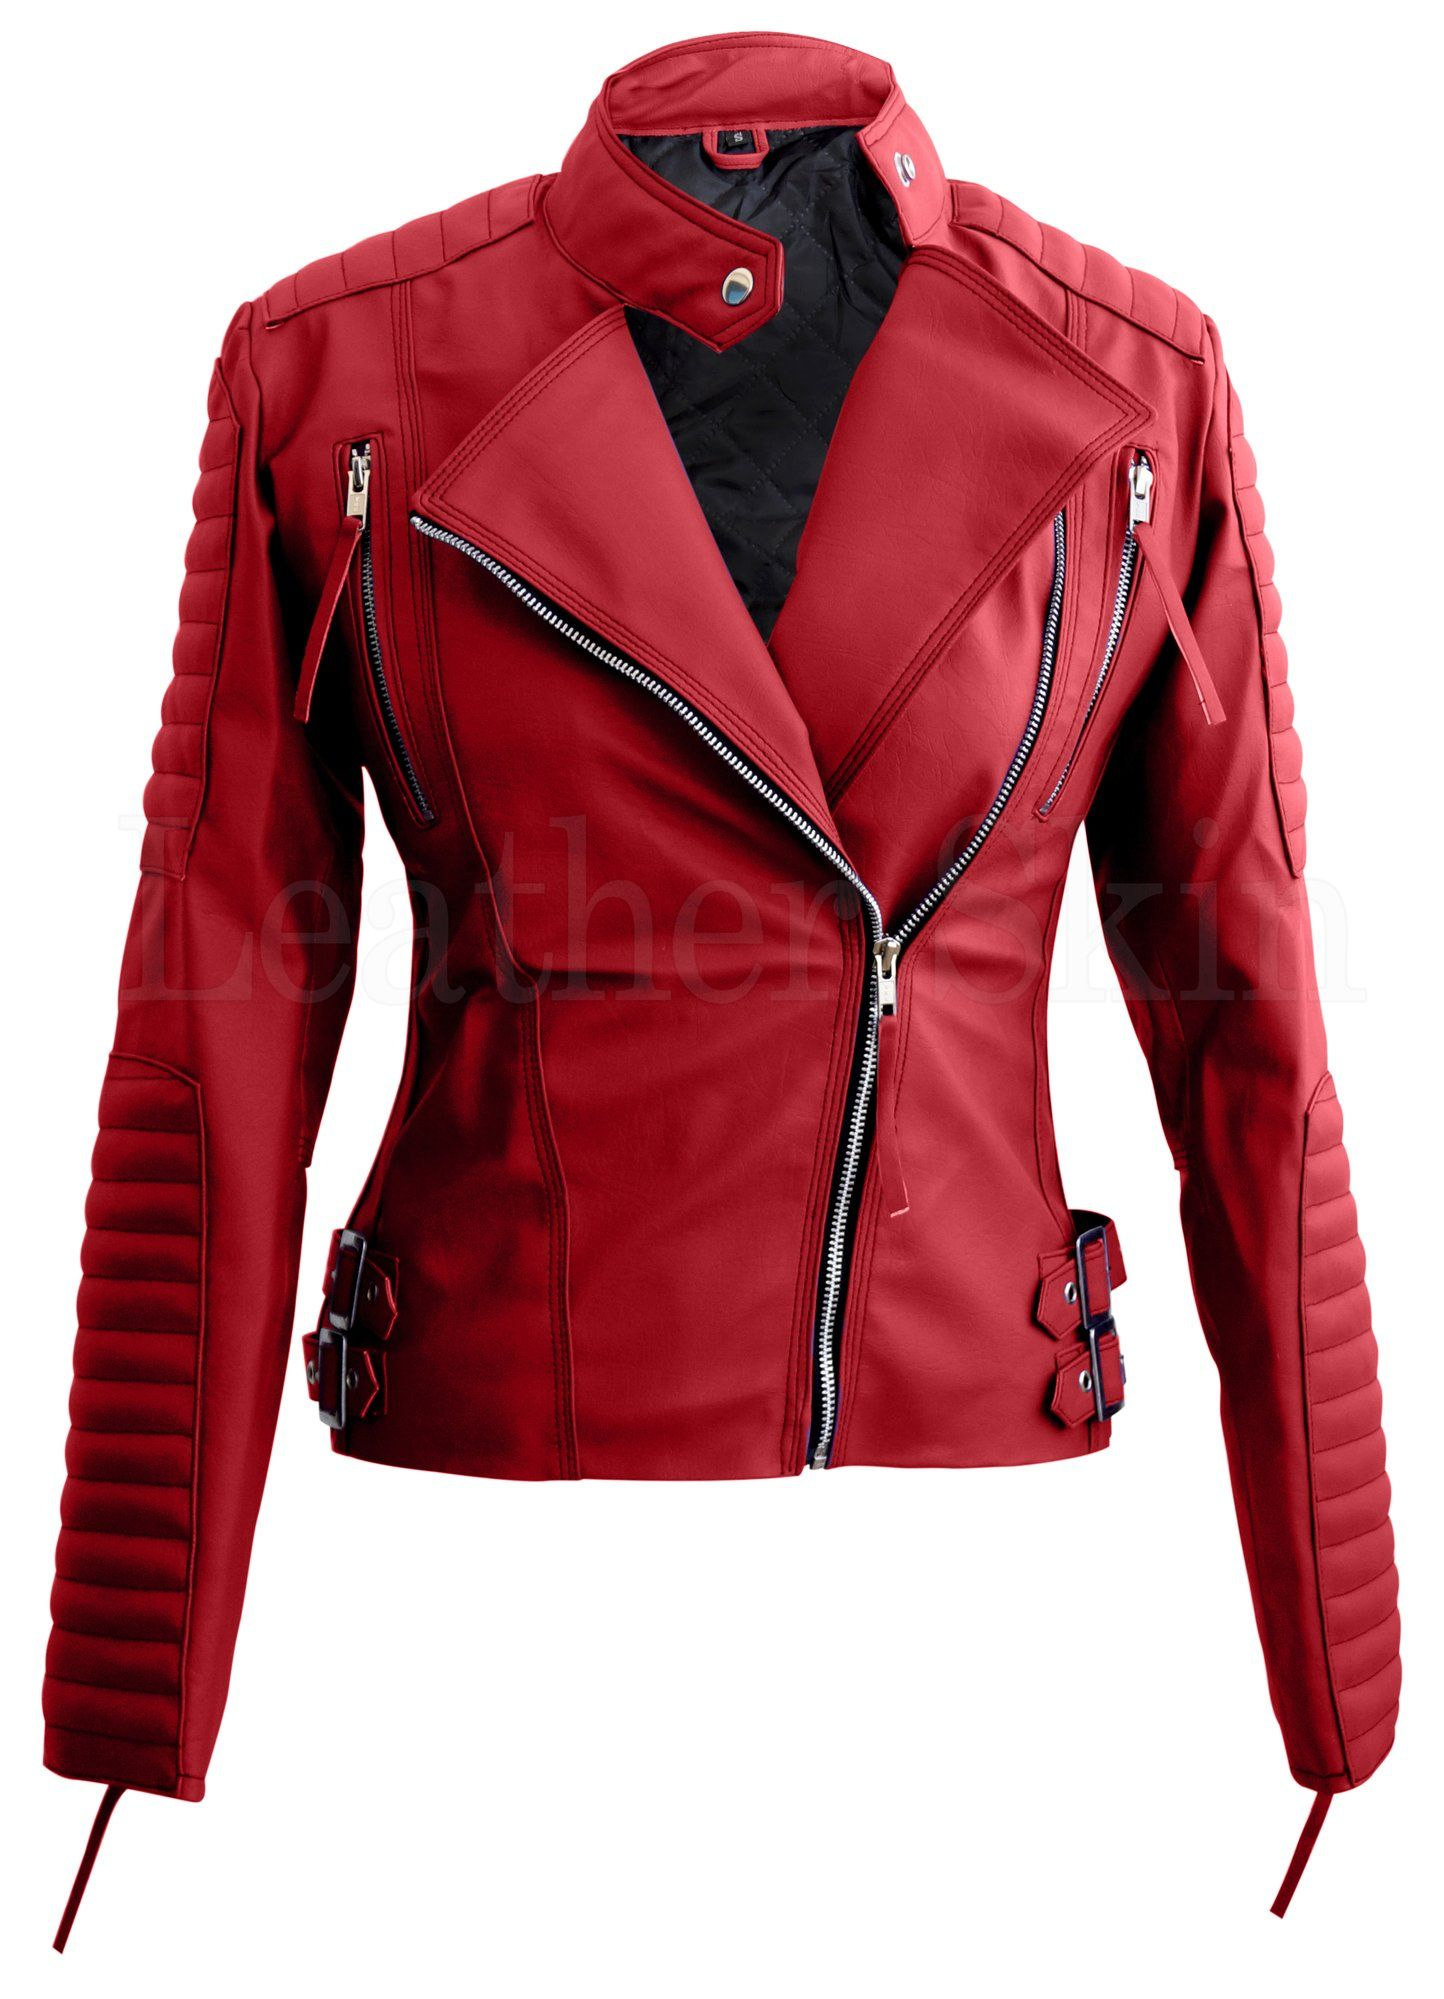 Leather Skin Red Women Ladies Brando Style Synthetic Leather Jacket Purple Leather Jacket Faux Leather Jacket Women Leather Jackets Women [ 1999 x 1444 Pixel ]